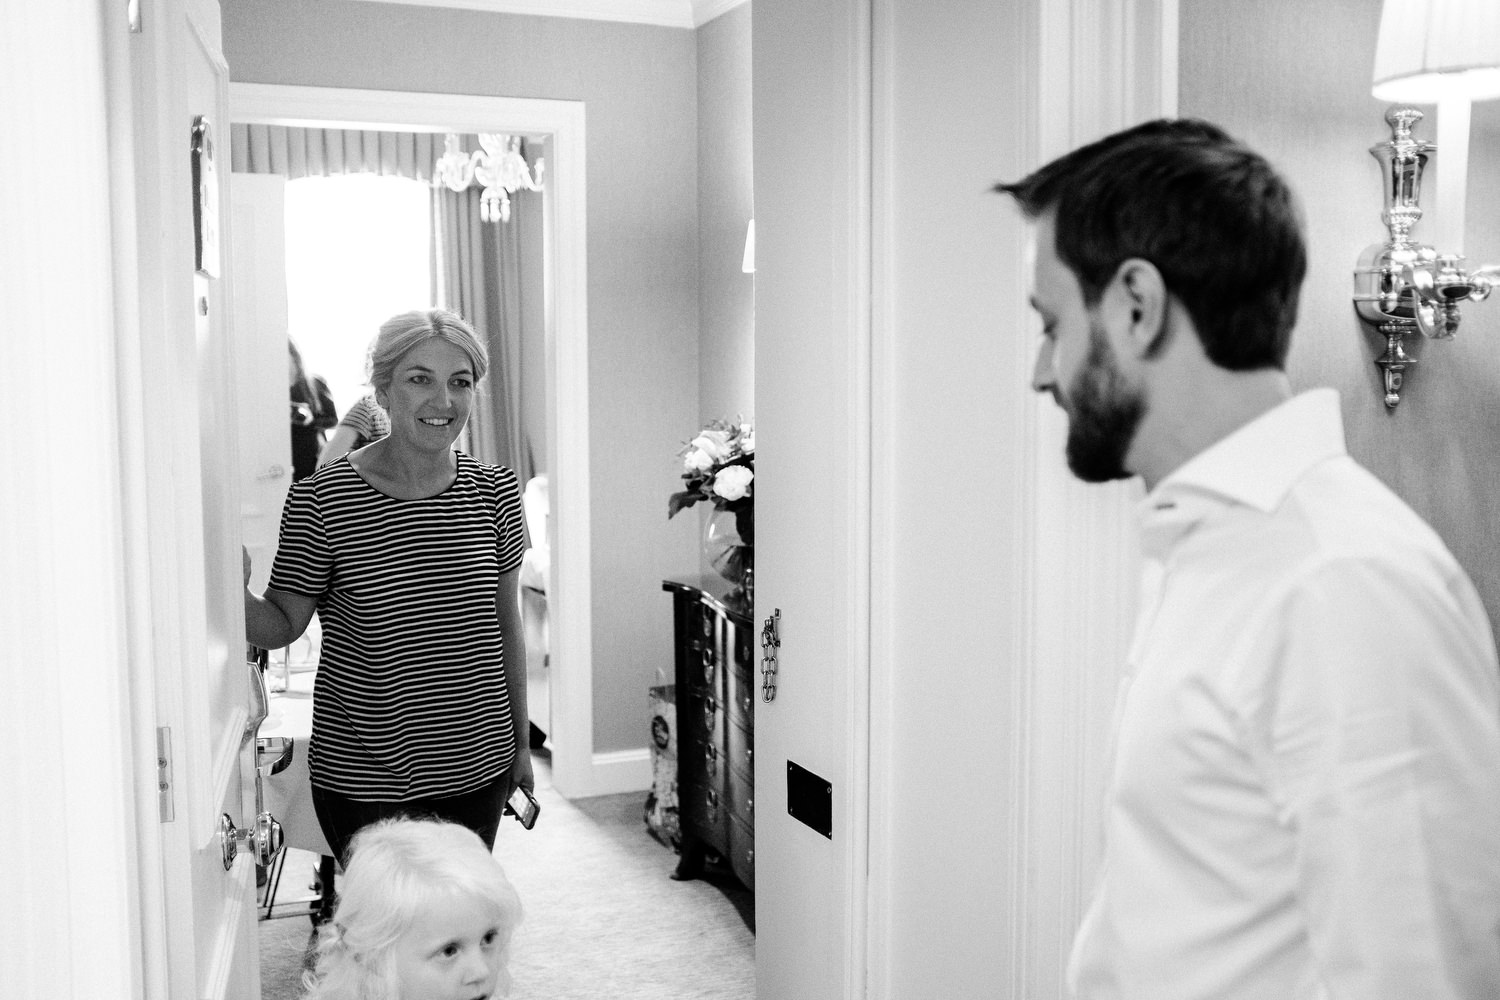 dmp0063_preparation_photographer_dublin_david_mcclelland_photography_shelbourne_documentary_wedding